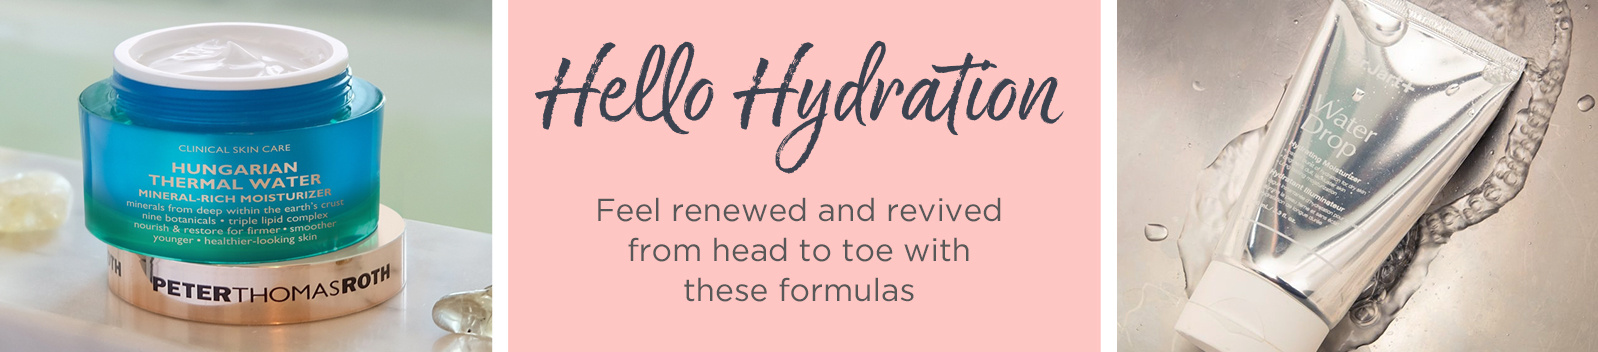 Hello Hydration. Feel renewed & revived from head to toe with these formulas